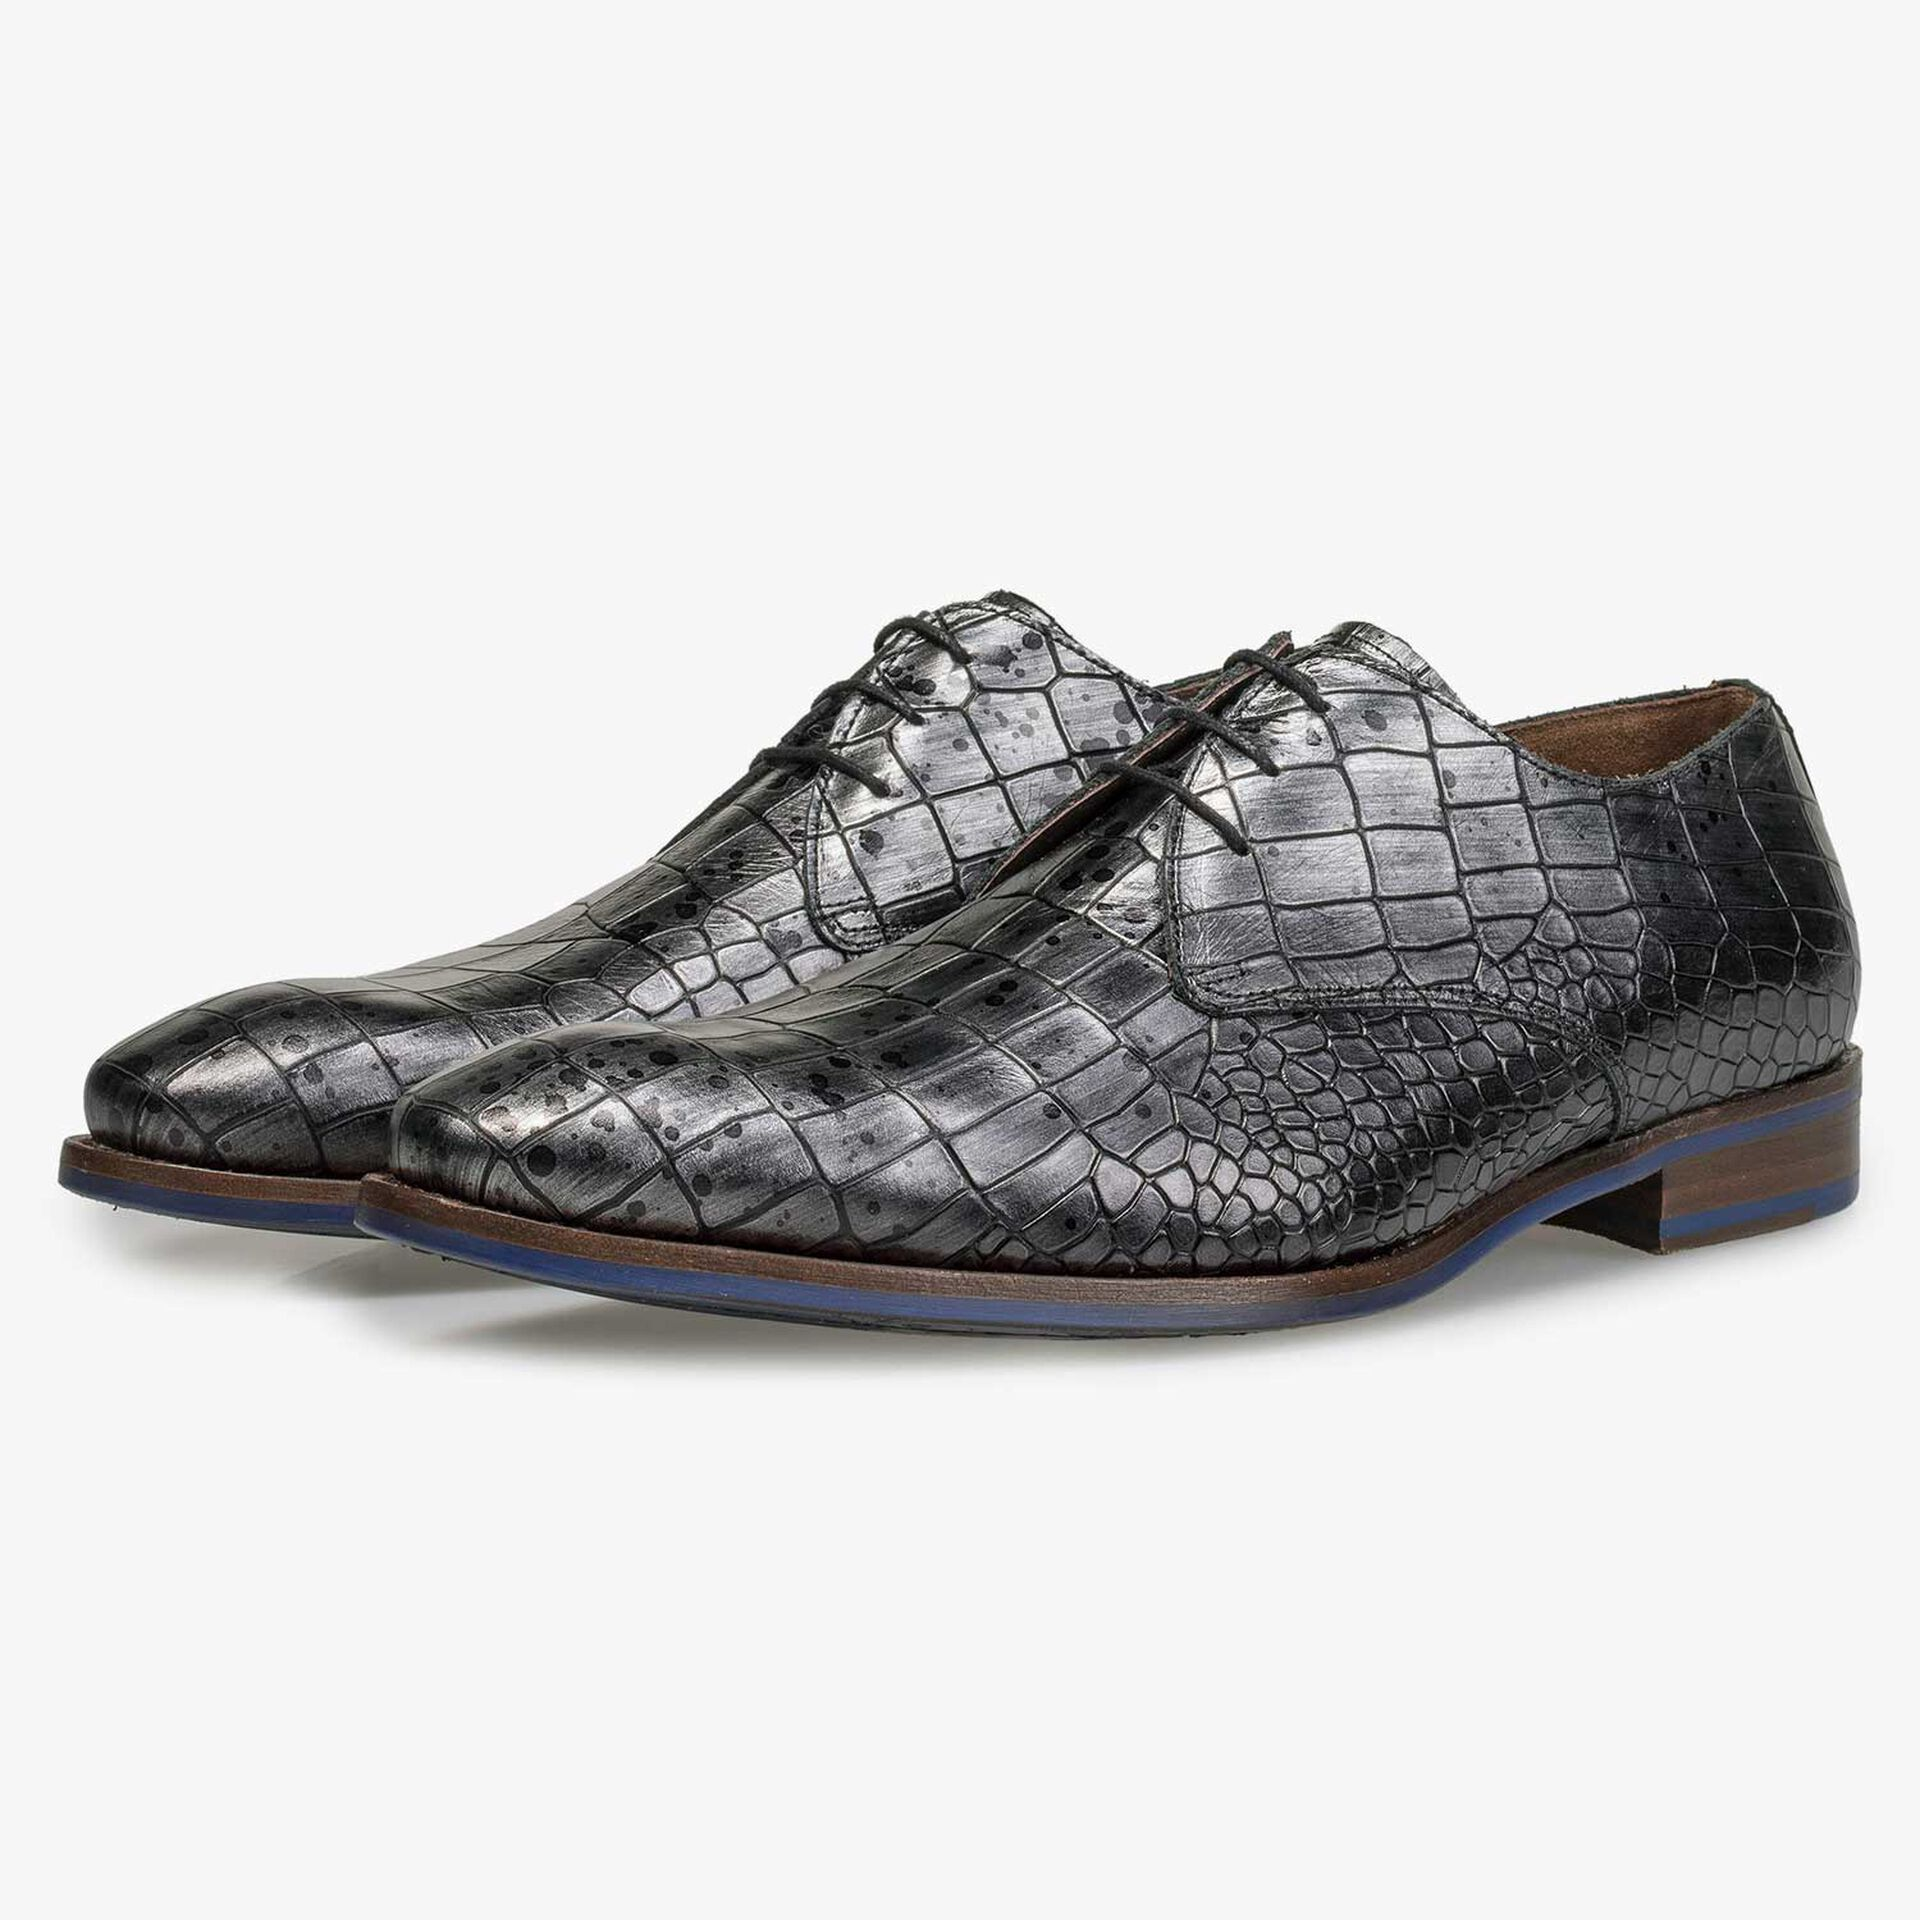 Grey leather lace shoe with croco print